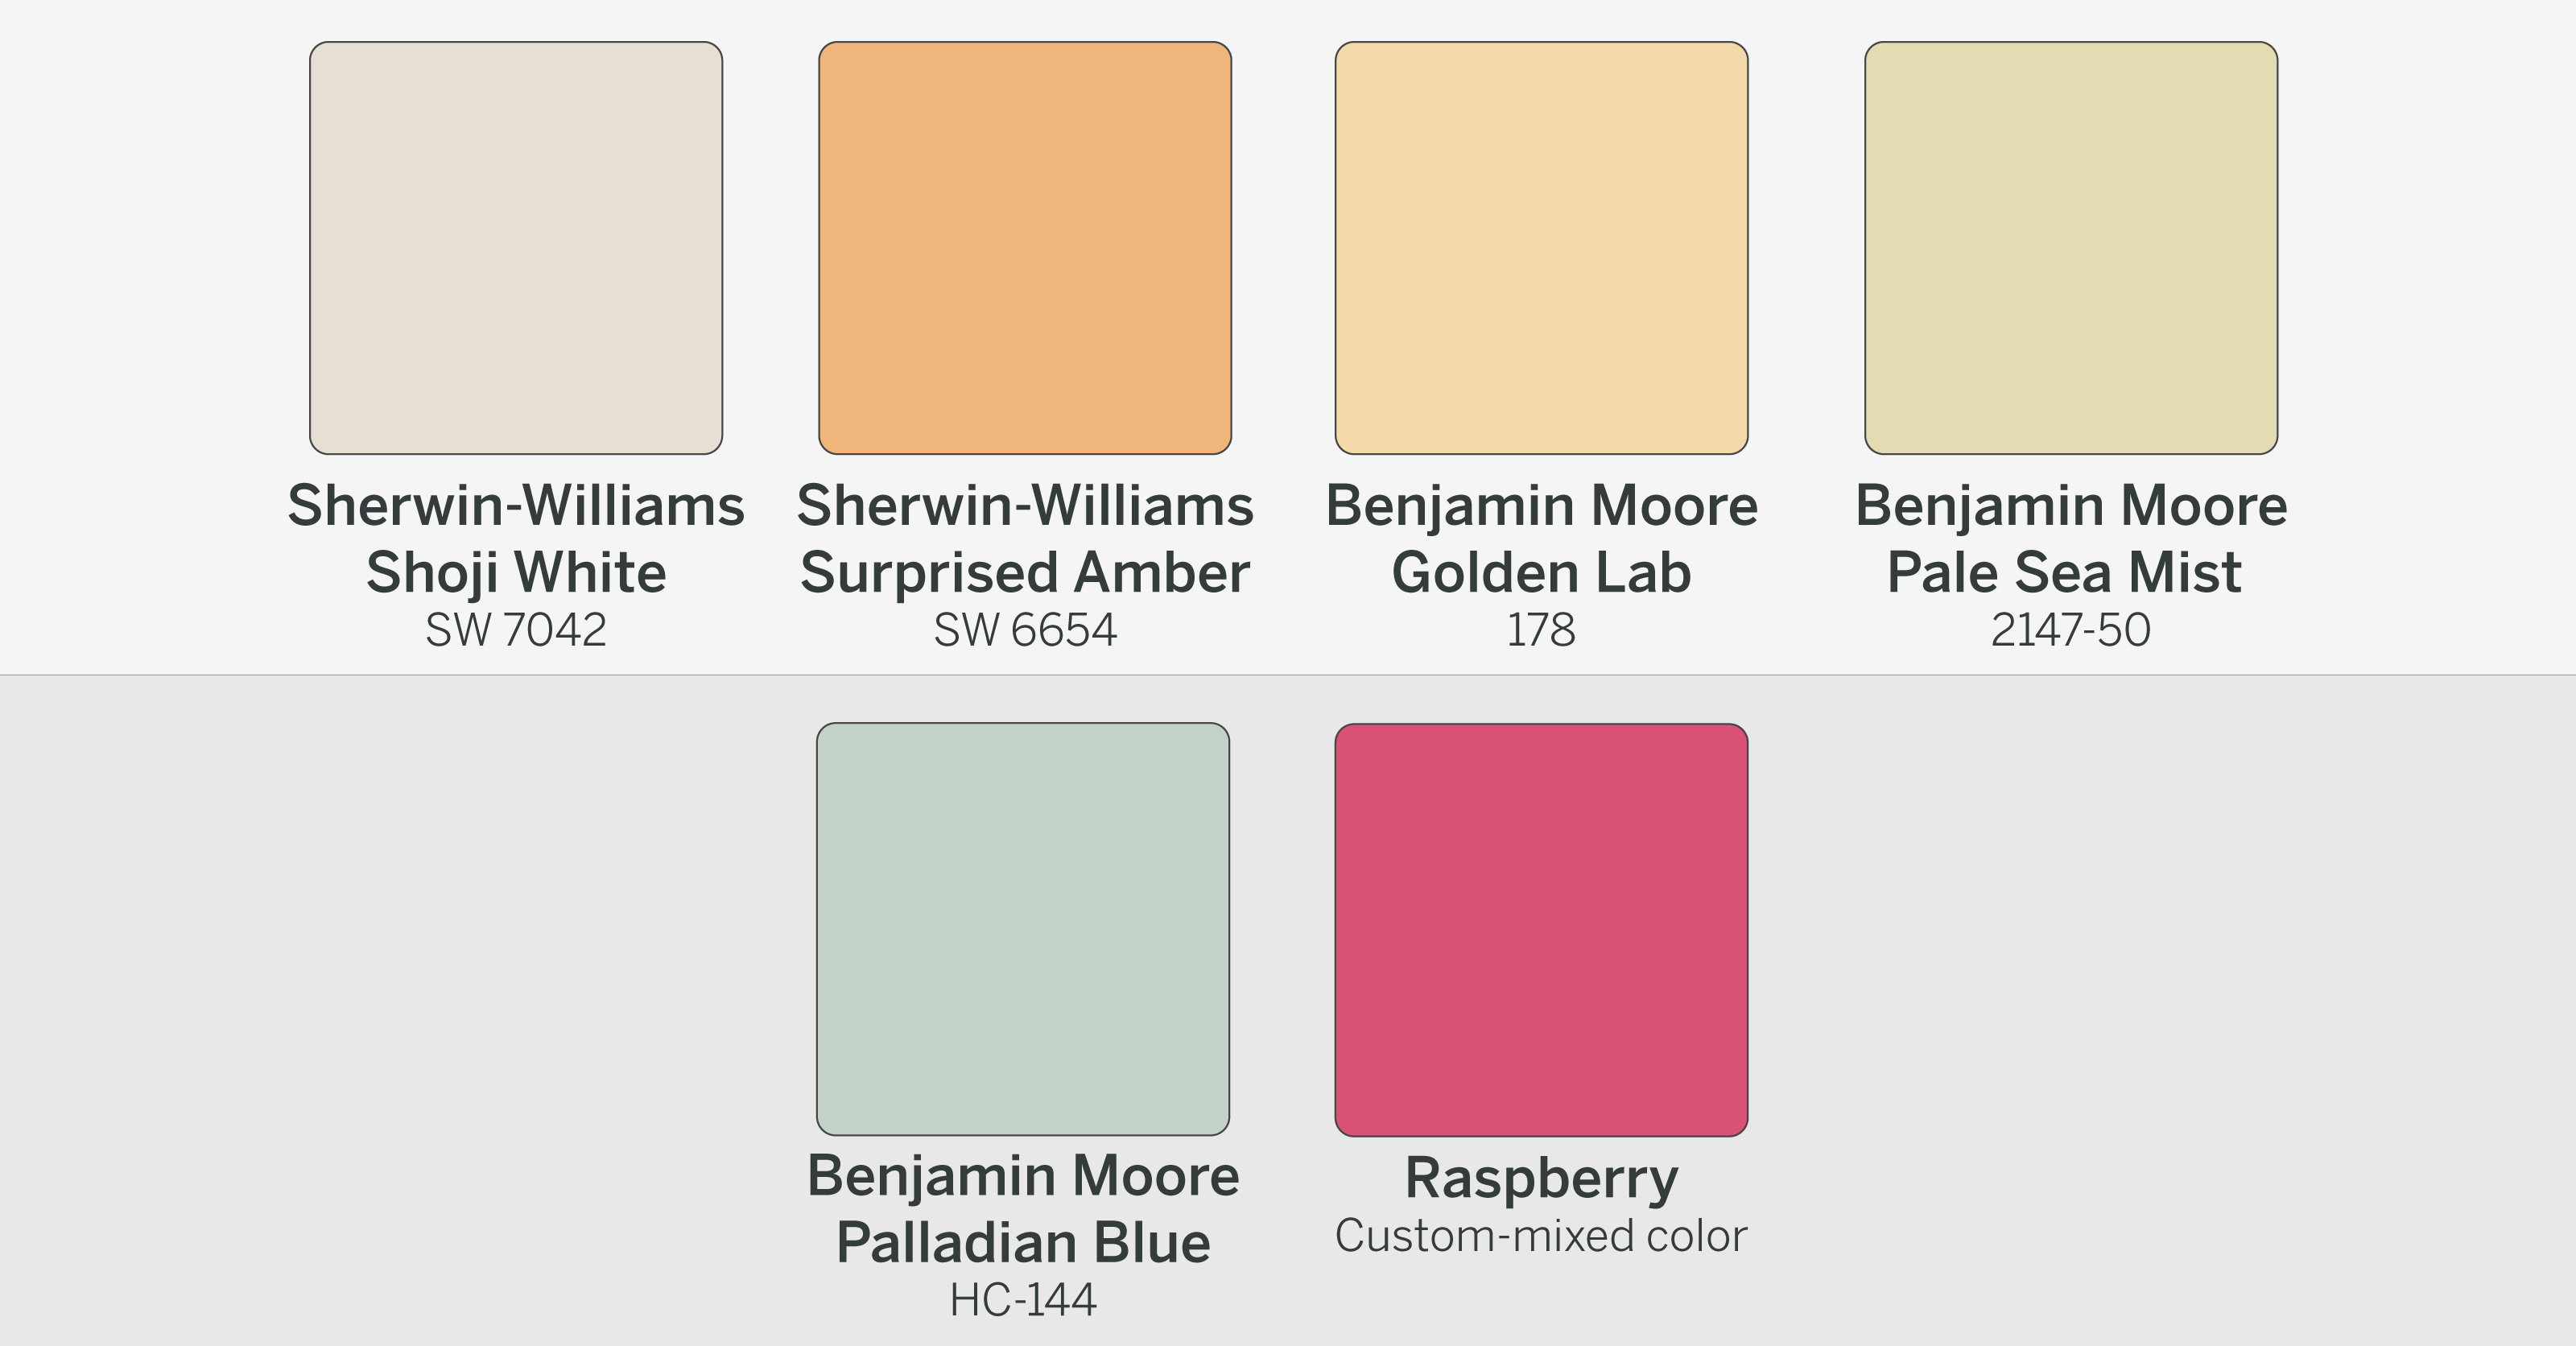 Paint color palette used by color expert Maria Killam